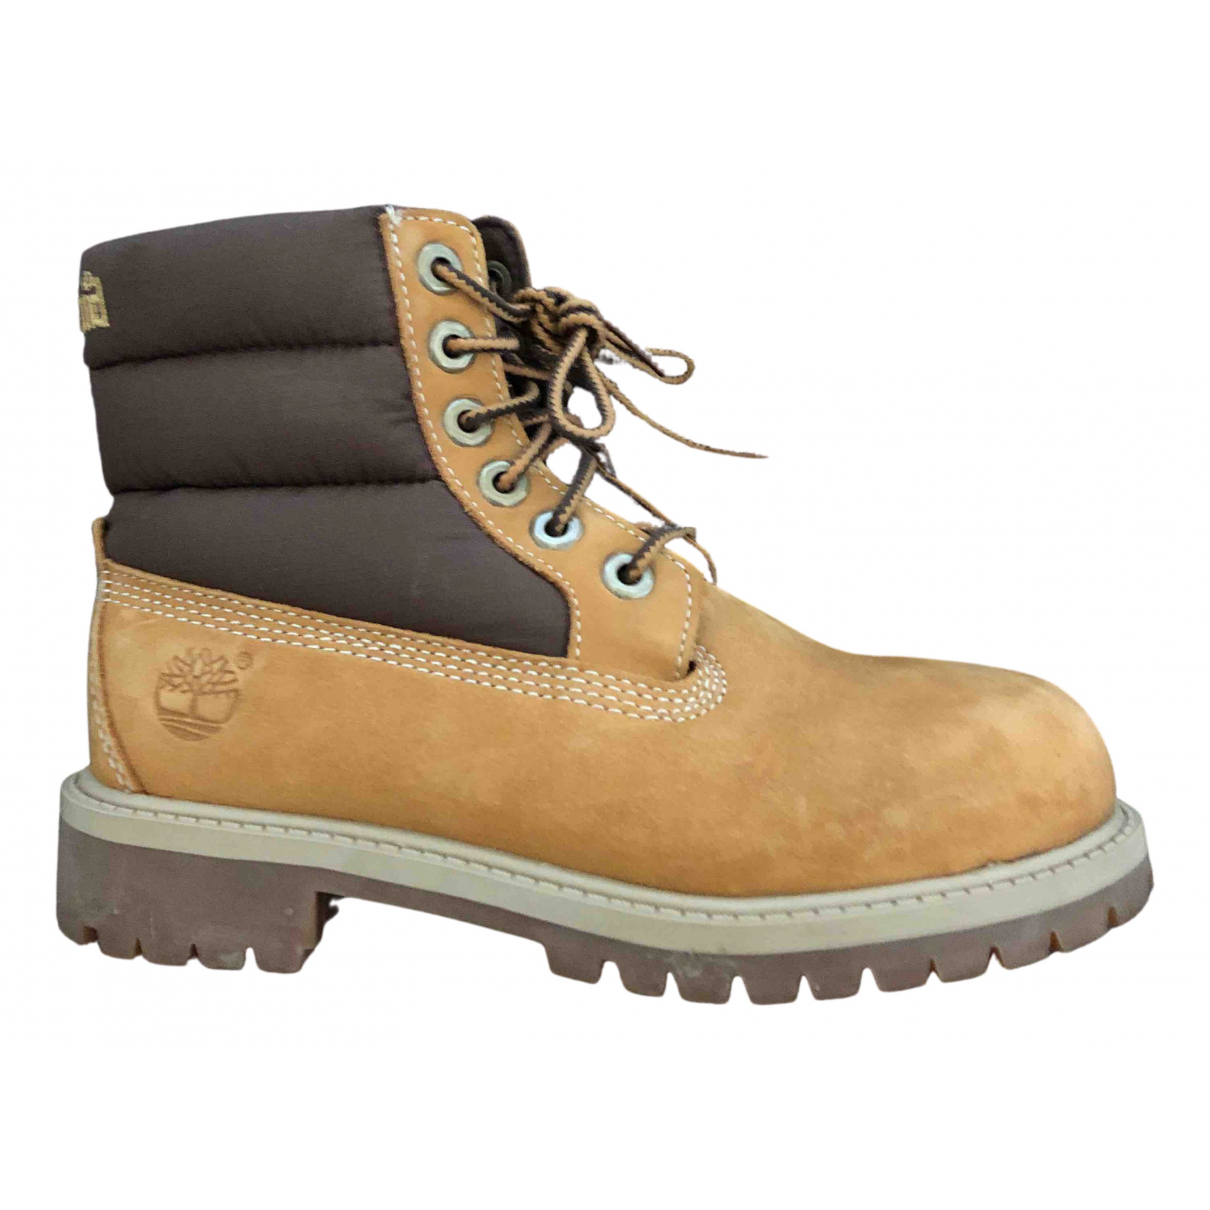 Timberland N Camel Leather Boots for Kids 31 FR